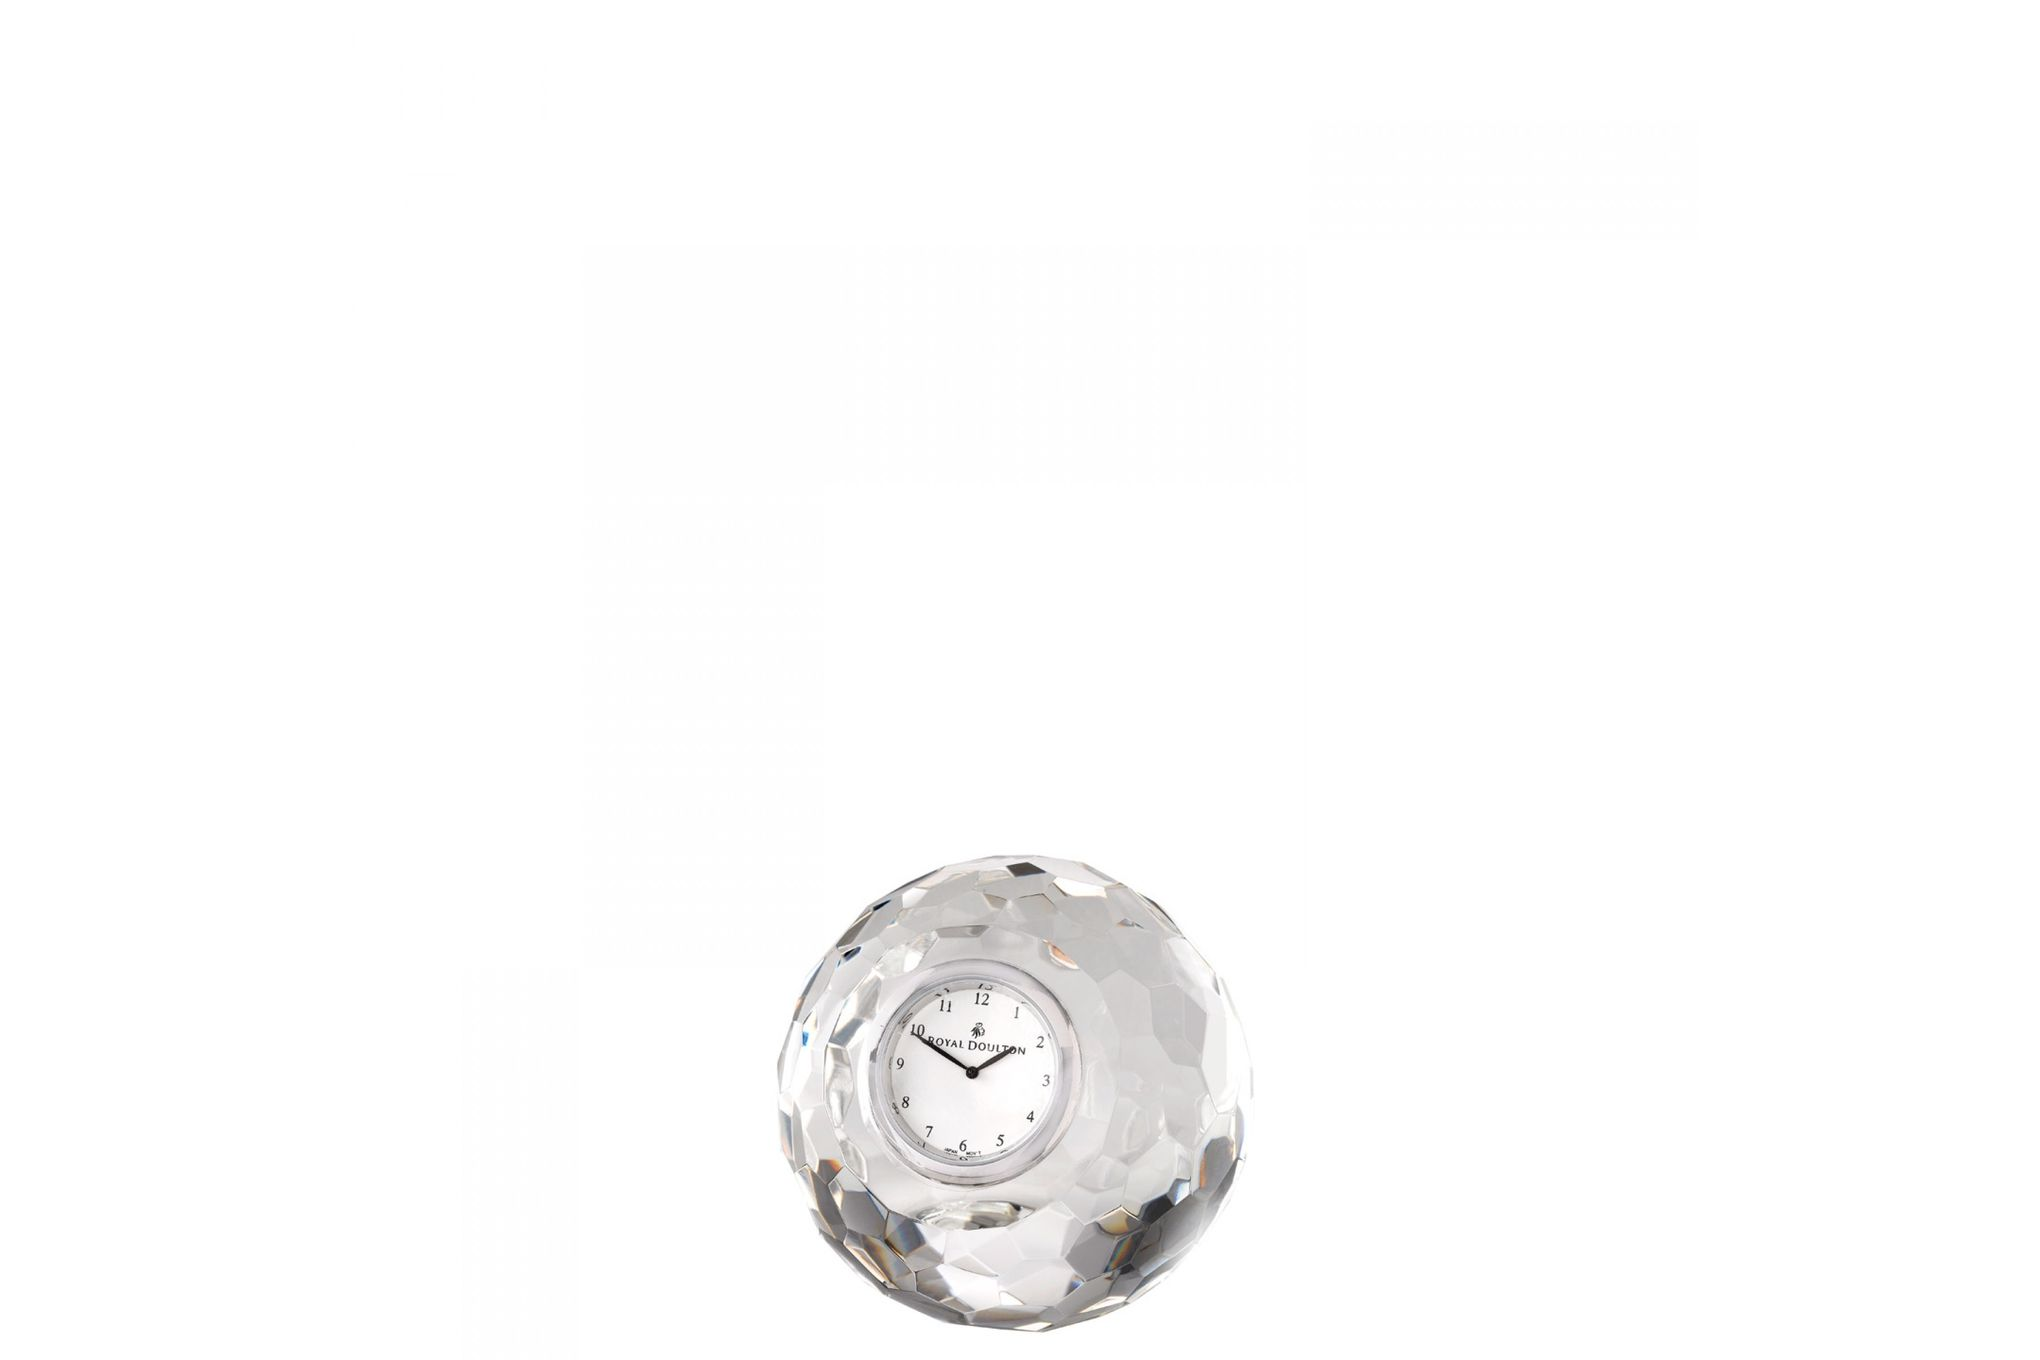 Royal Doulton Radiance Clock Round Faceted Boxed thumb 1